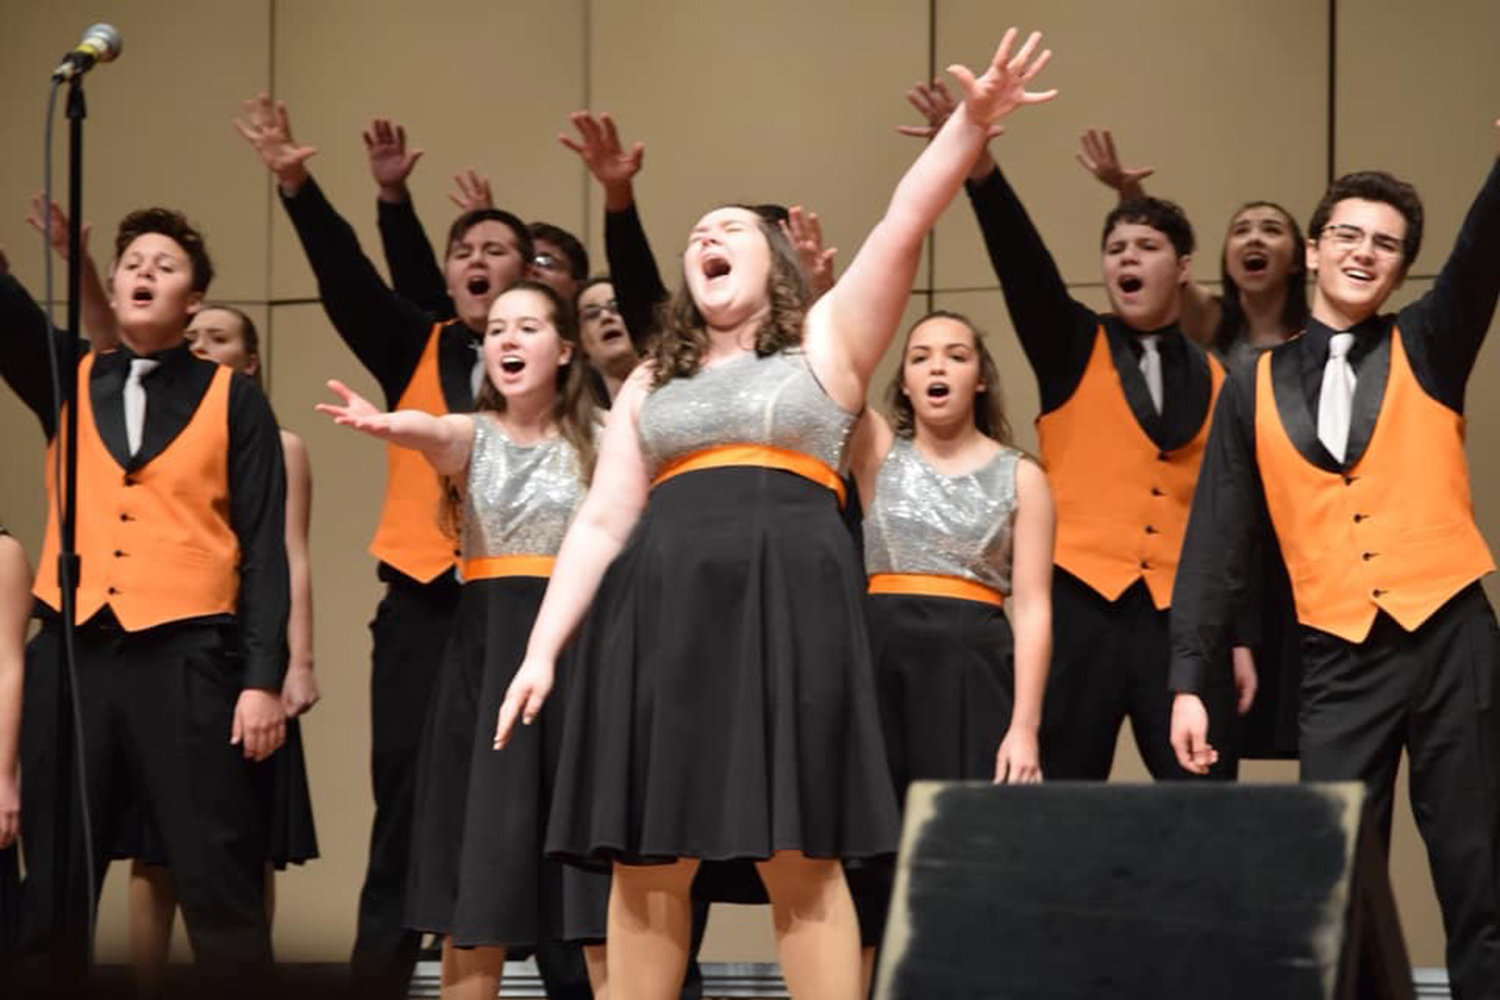 PERFORMING TONIGHT — Rome Free Academy's Rhapsody Show Choir, shown here during a recent performance, will host a performance tonight with the Rome Community Theatre Talent Team and the Denti Elementary Drama Club at the RFA auditorium. It begins at 7 p.m.